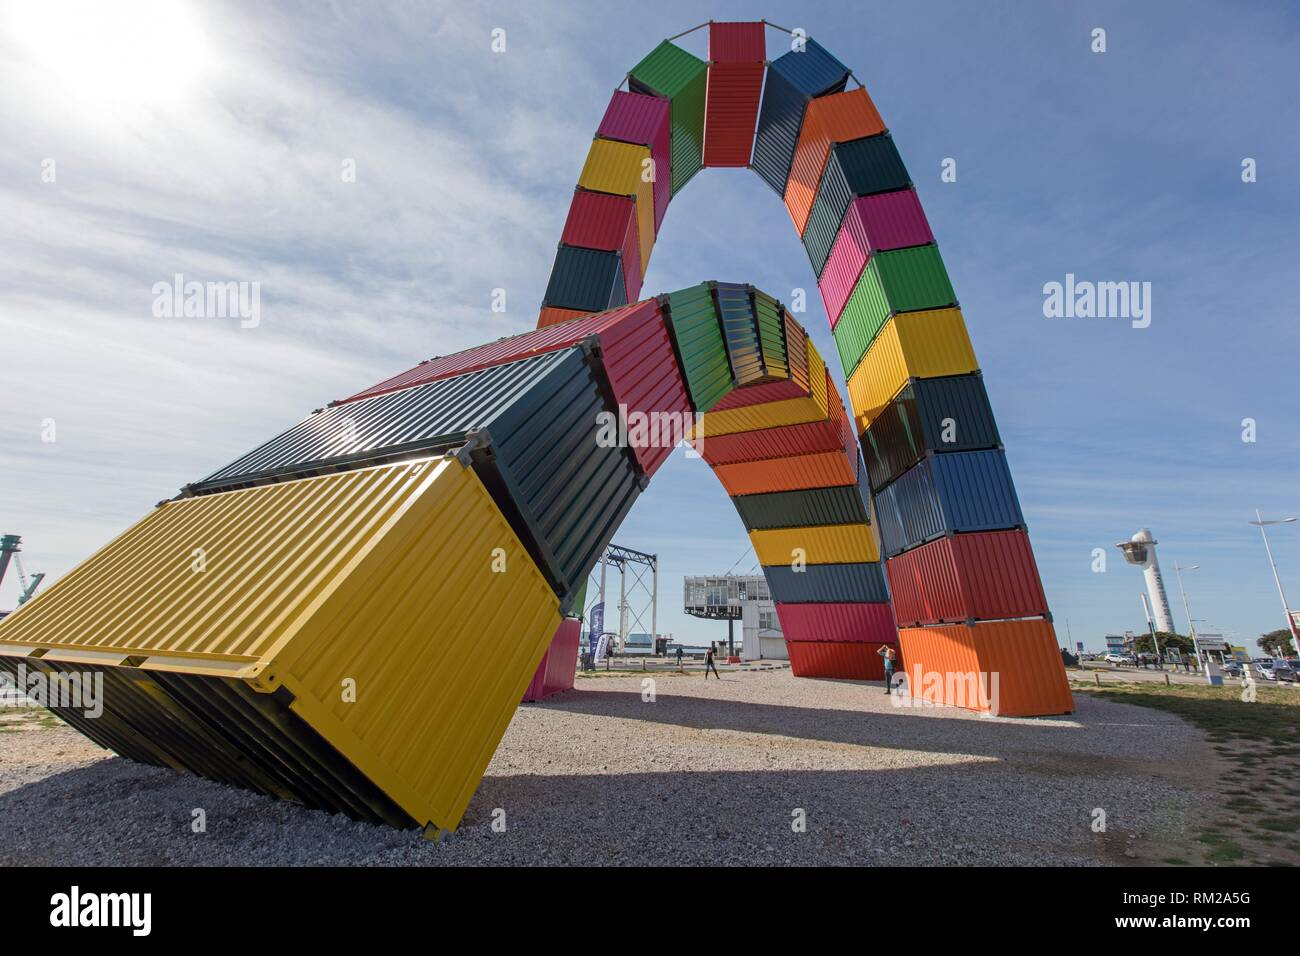 colored container art installation Le Havre harbour - Stock Image